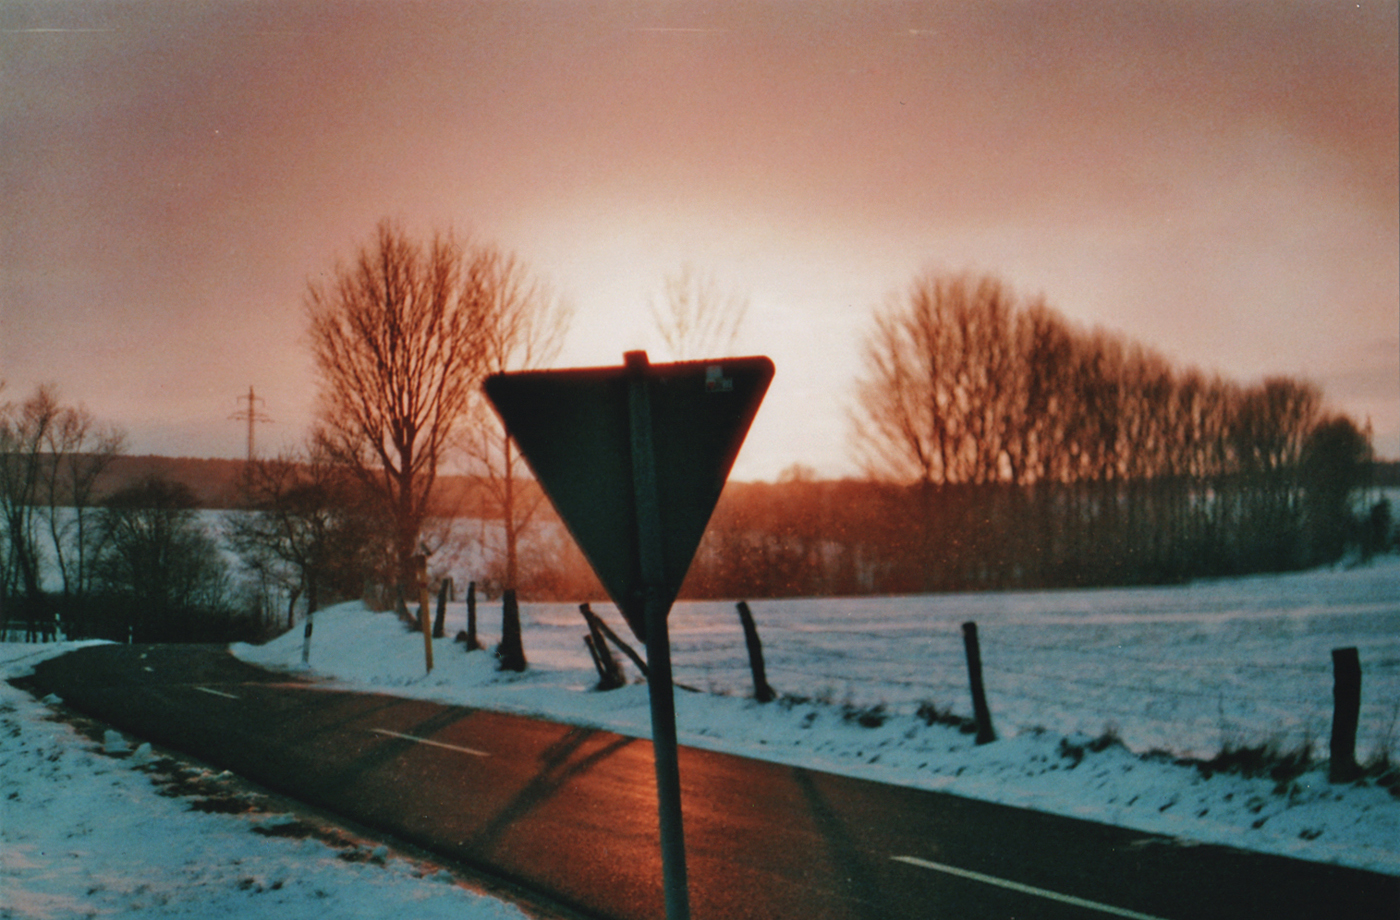 Triangular and Sunset on Film